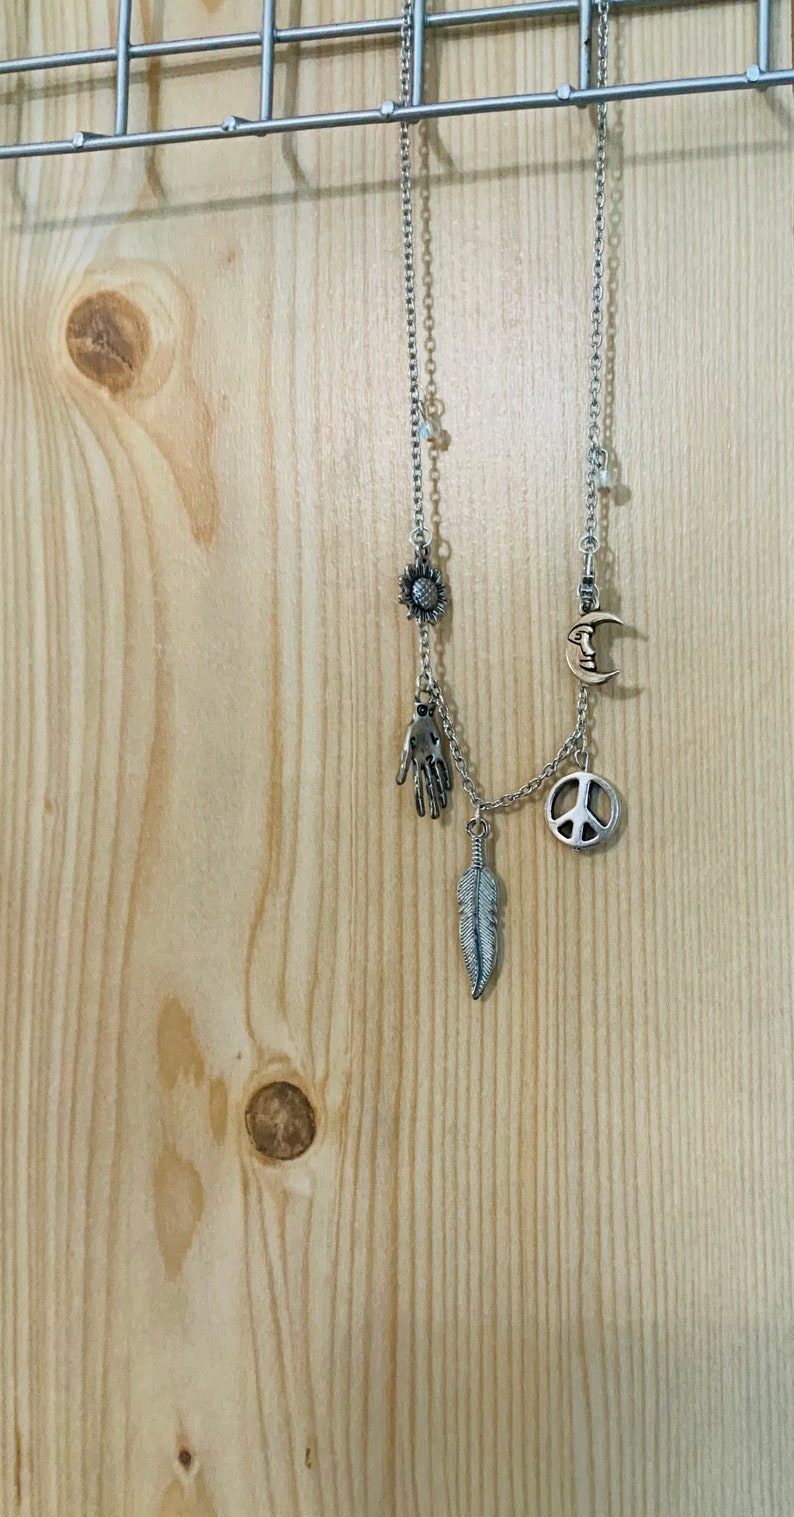 Charms from the Old World   Necklace  Charm Necklace  Silver Necklace  Mystical Necklace